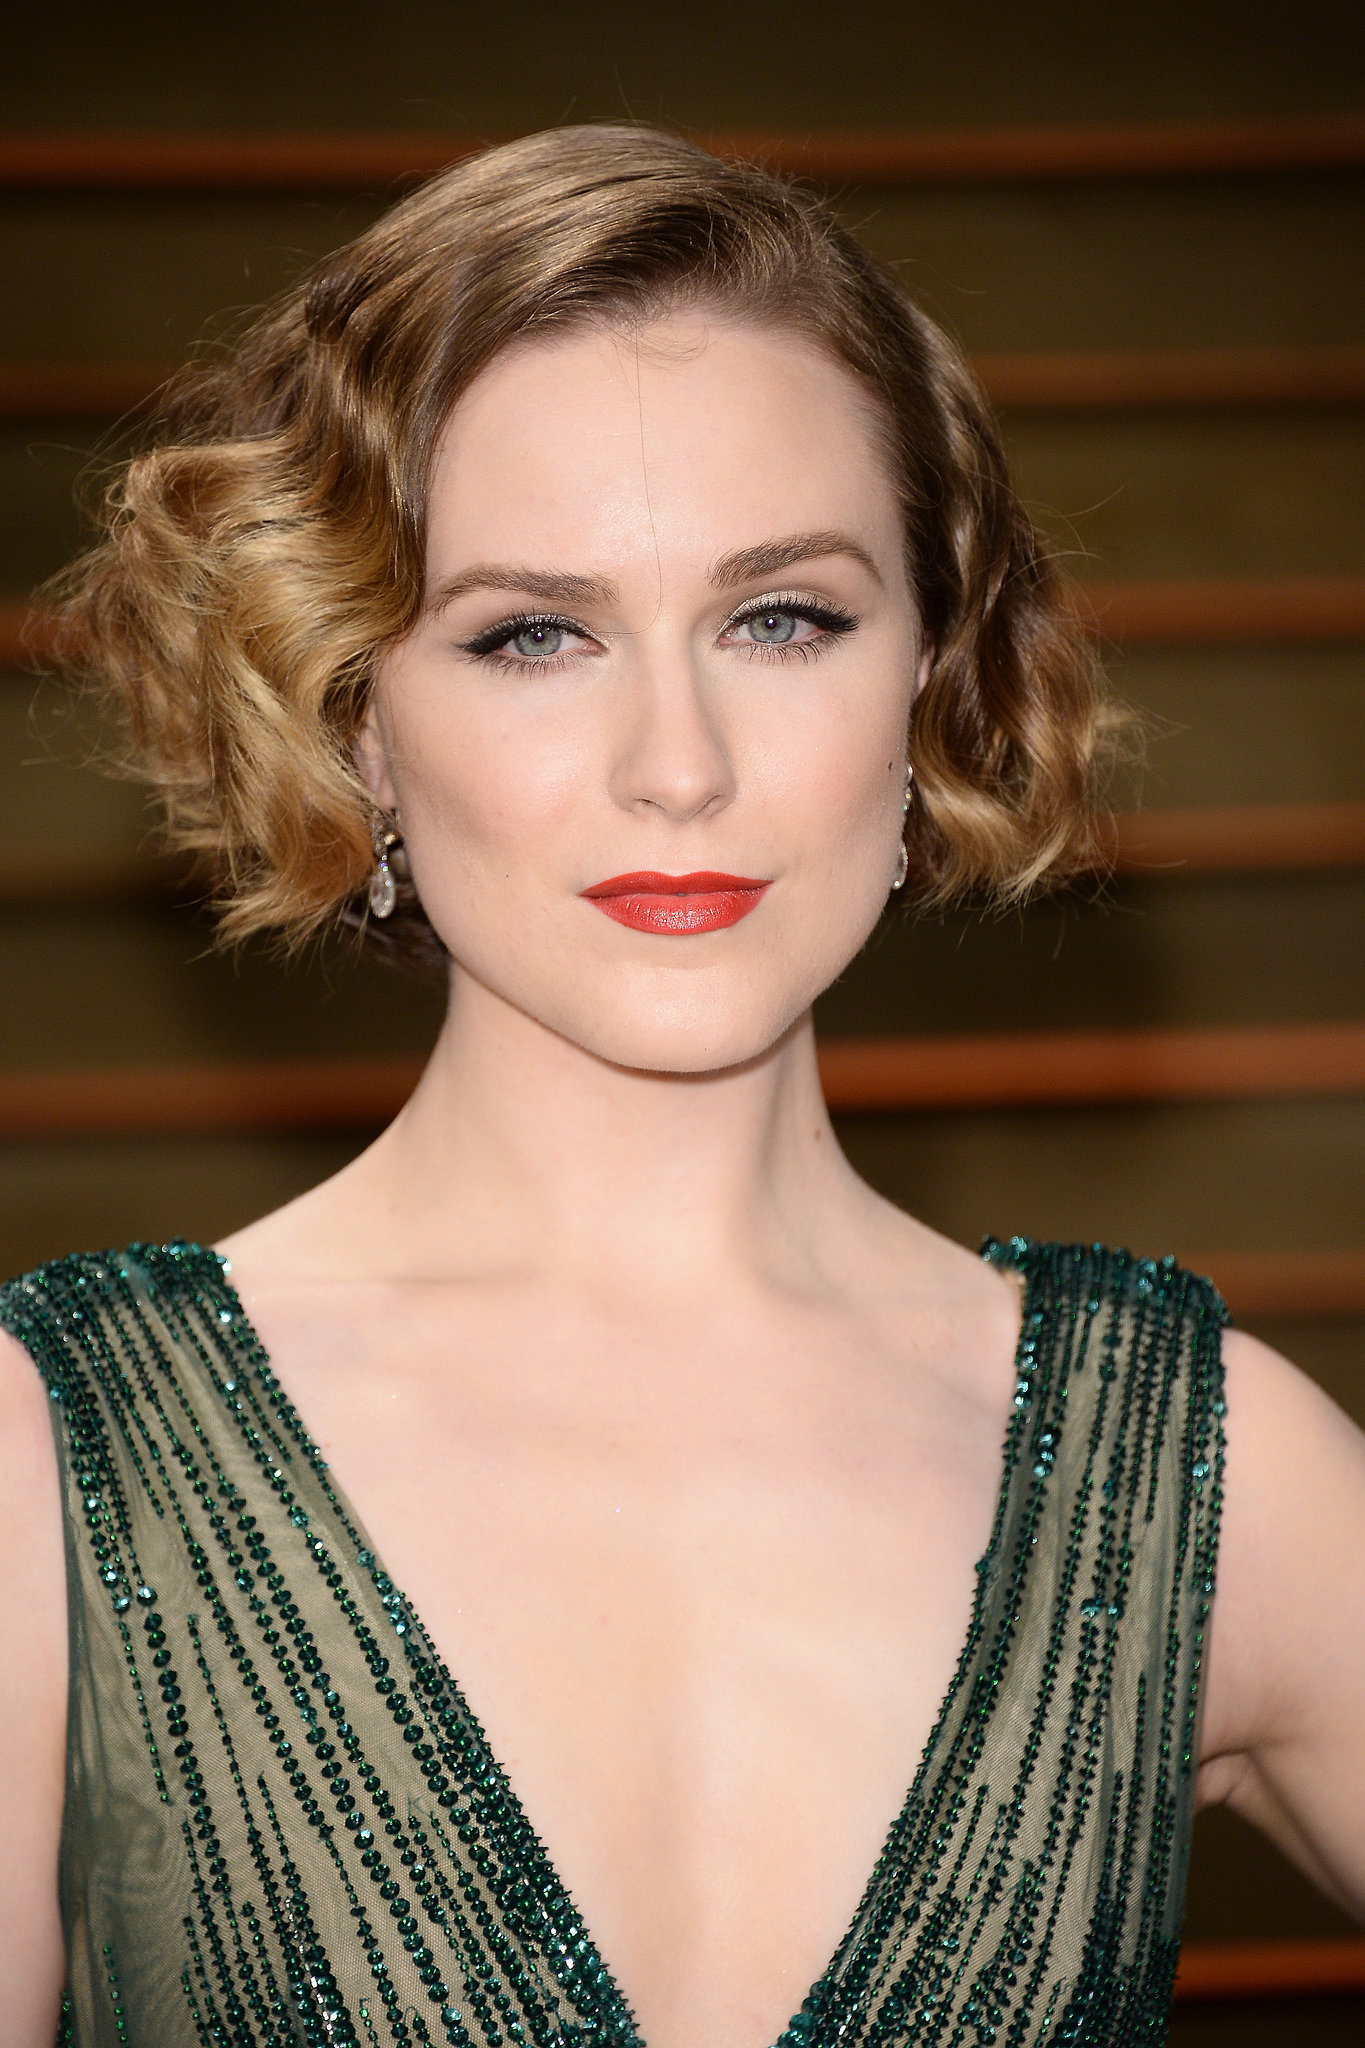 Evan Rachel Wood at Vanity Fair Party | The Golden Ticket ... Evan Rachel Wood